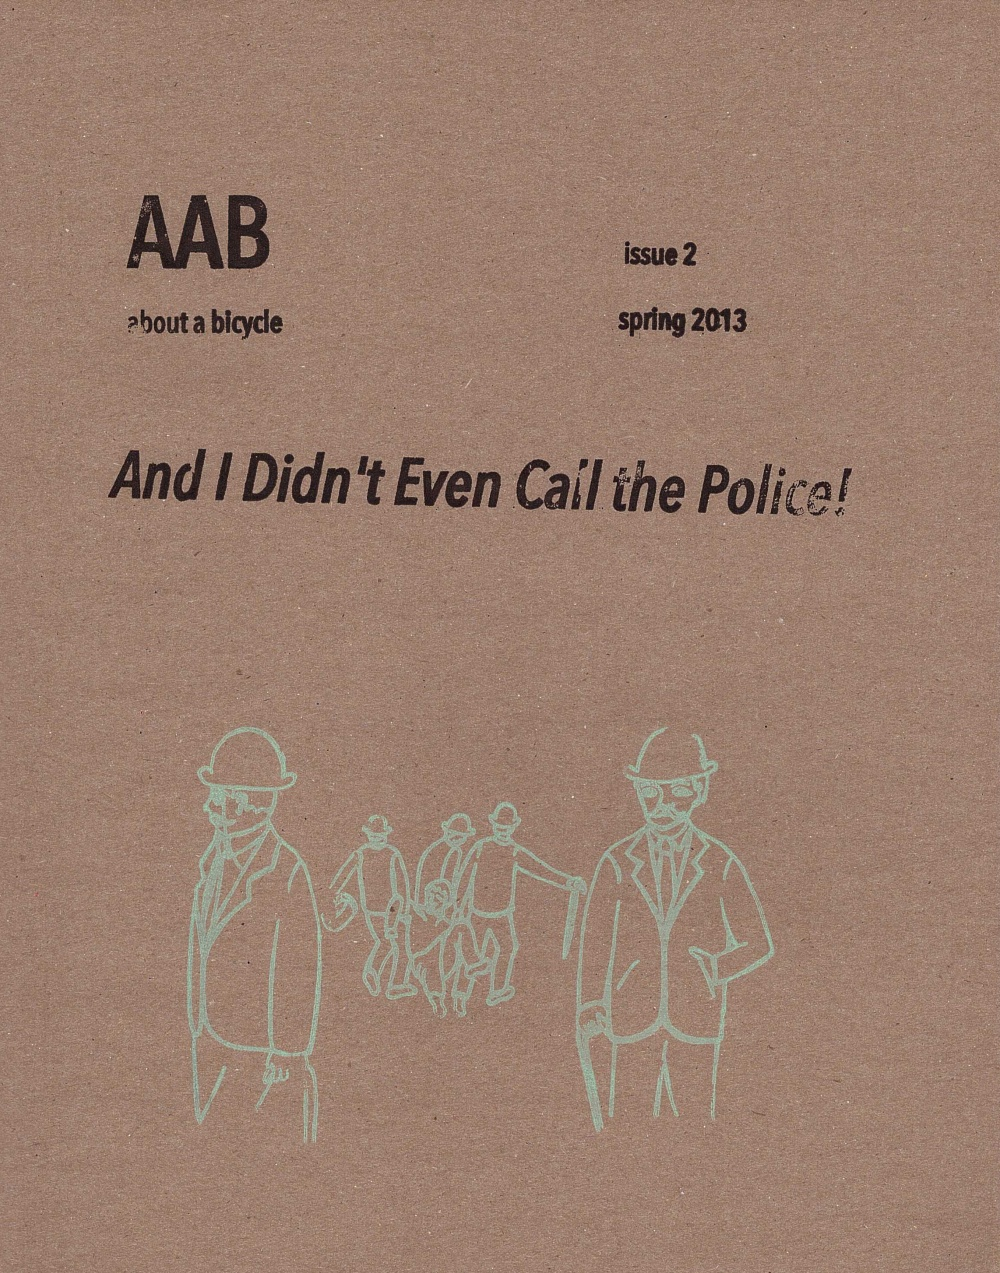 About A Bicycle Issue 2: And I Didn't Even Call the Police!